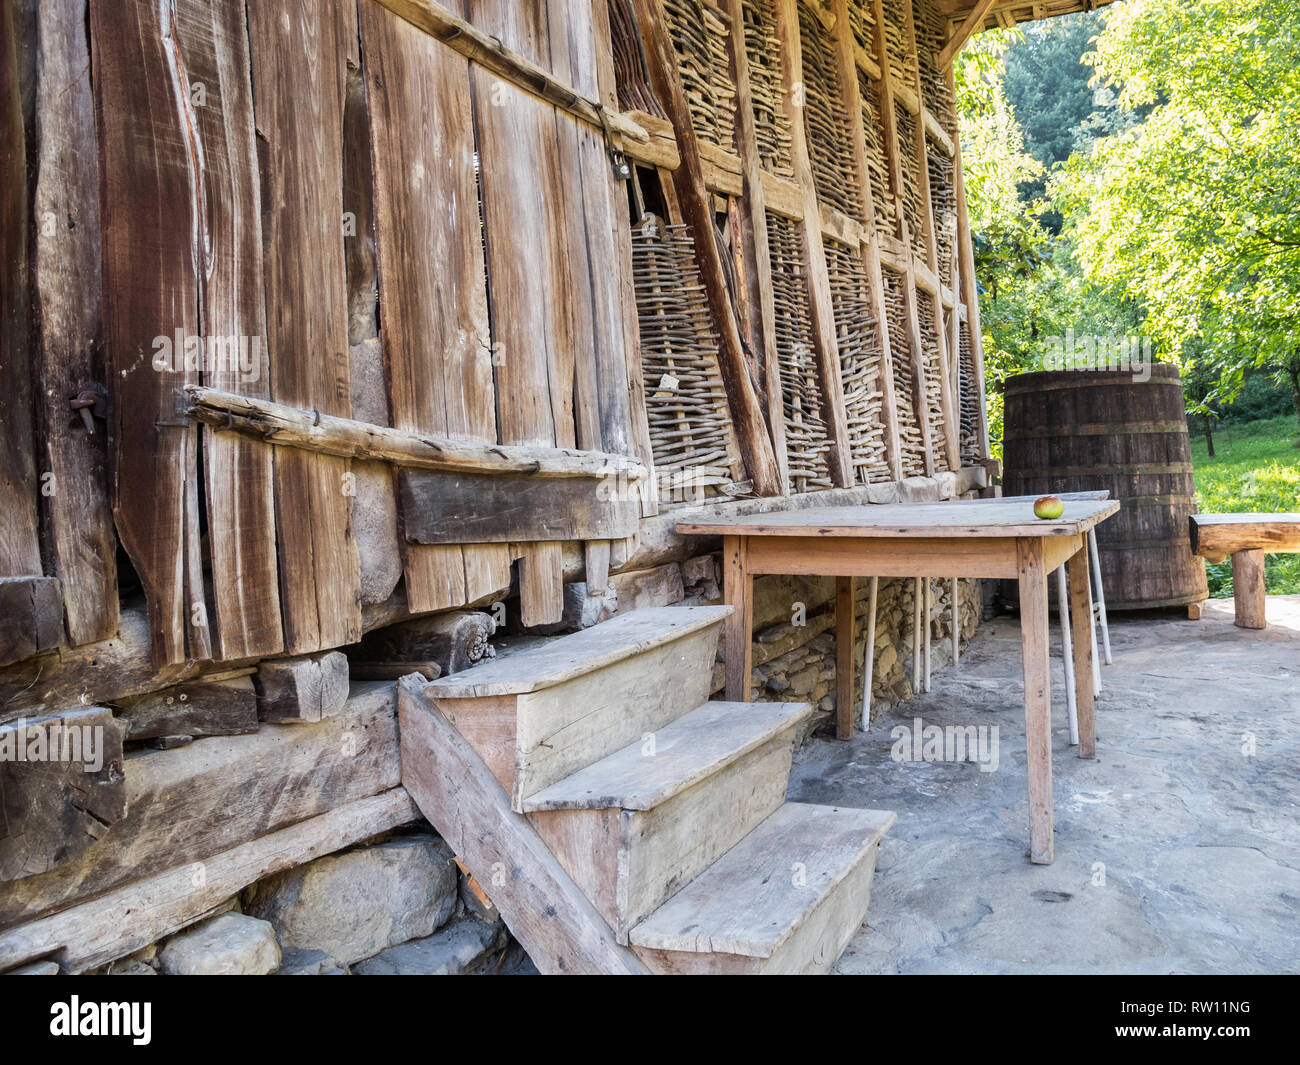 Part of an old wooden barn with a barrel and table with an apple on it in front, at Baba Stana Neighborhood, Oreshak, Bulgaria - Stock Image